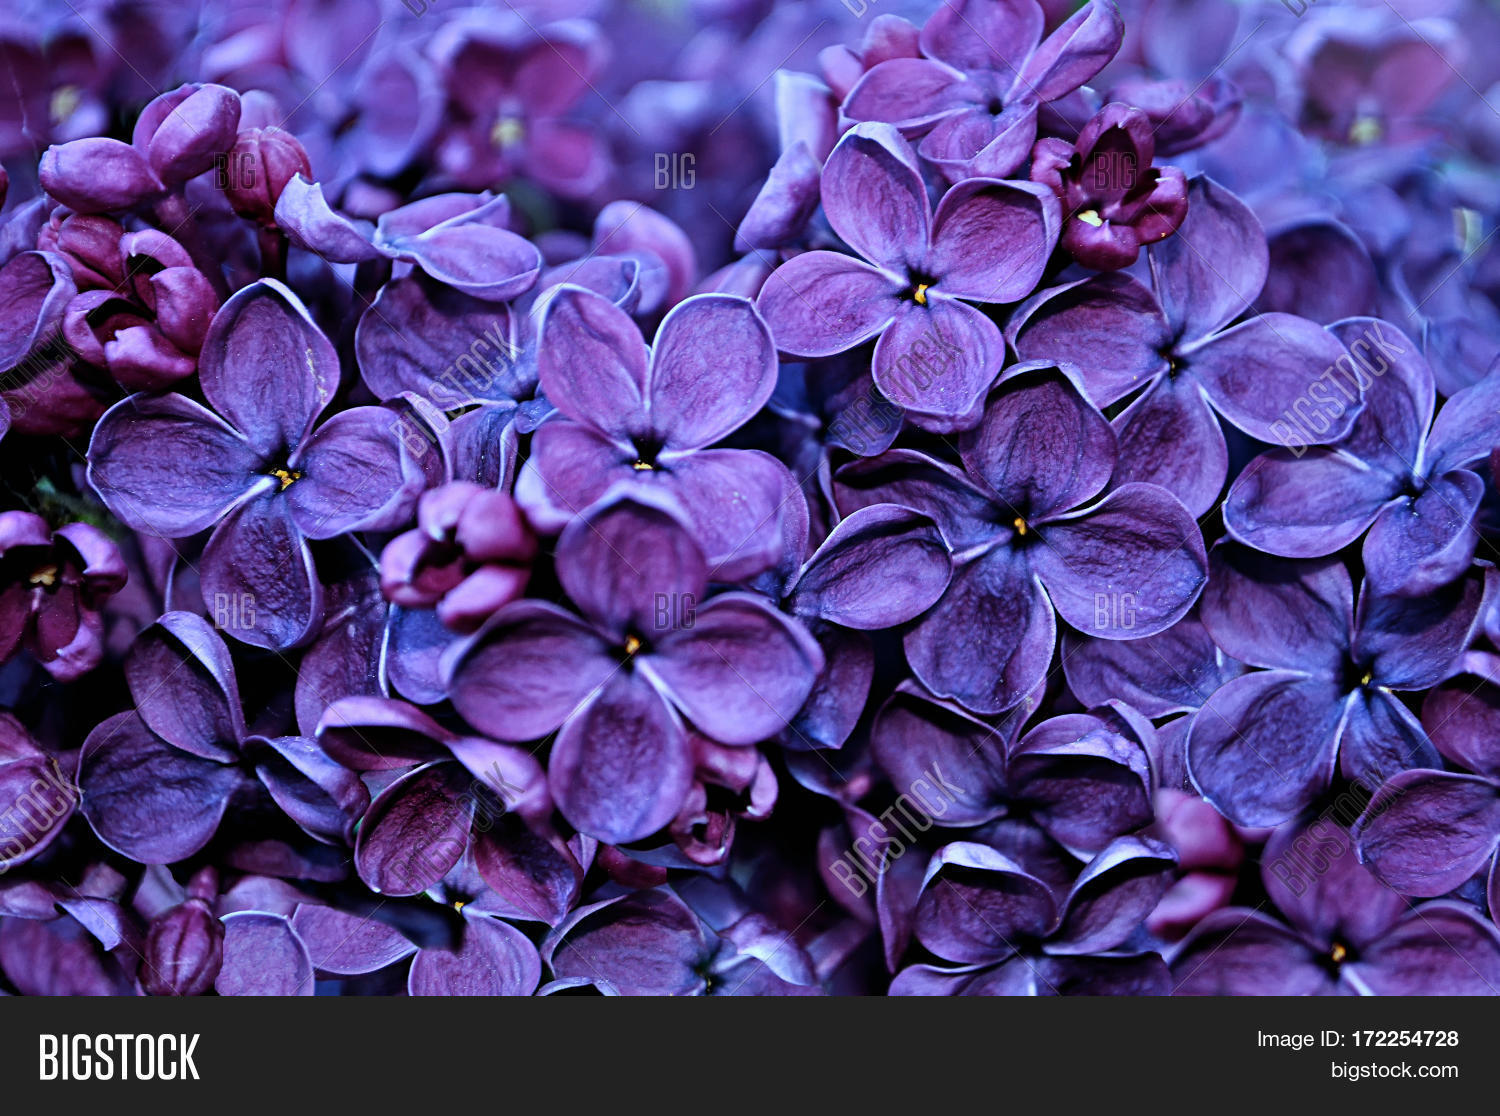 Nature View Lilac Image Photo Free Trial Bigstock